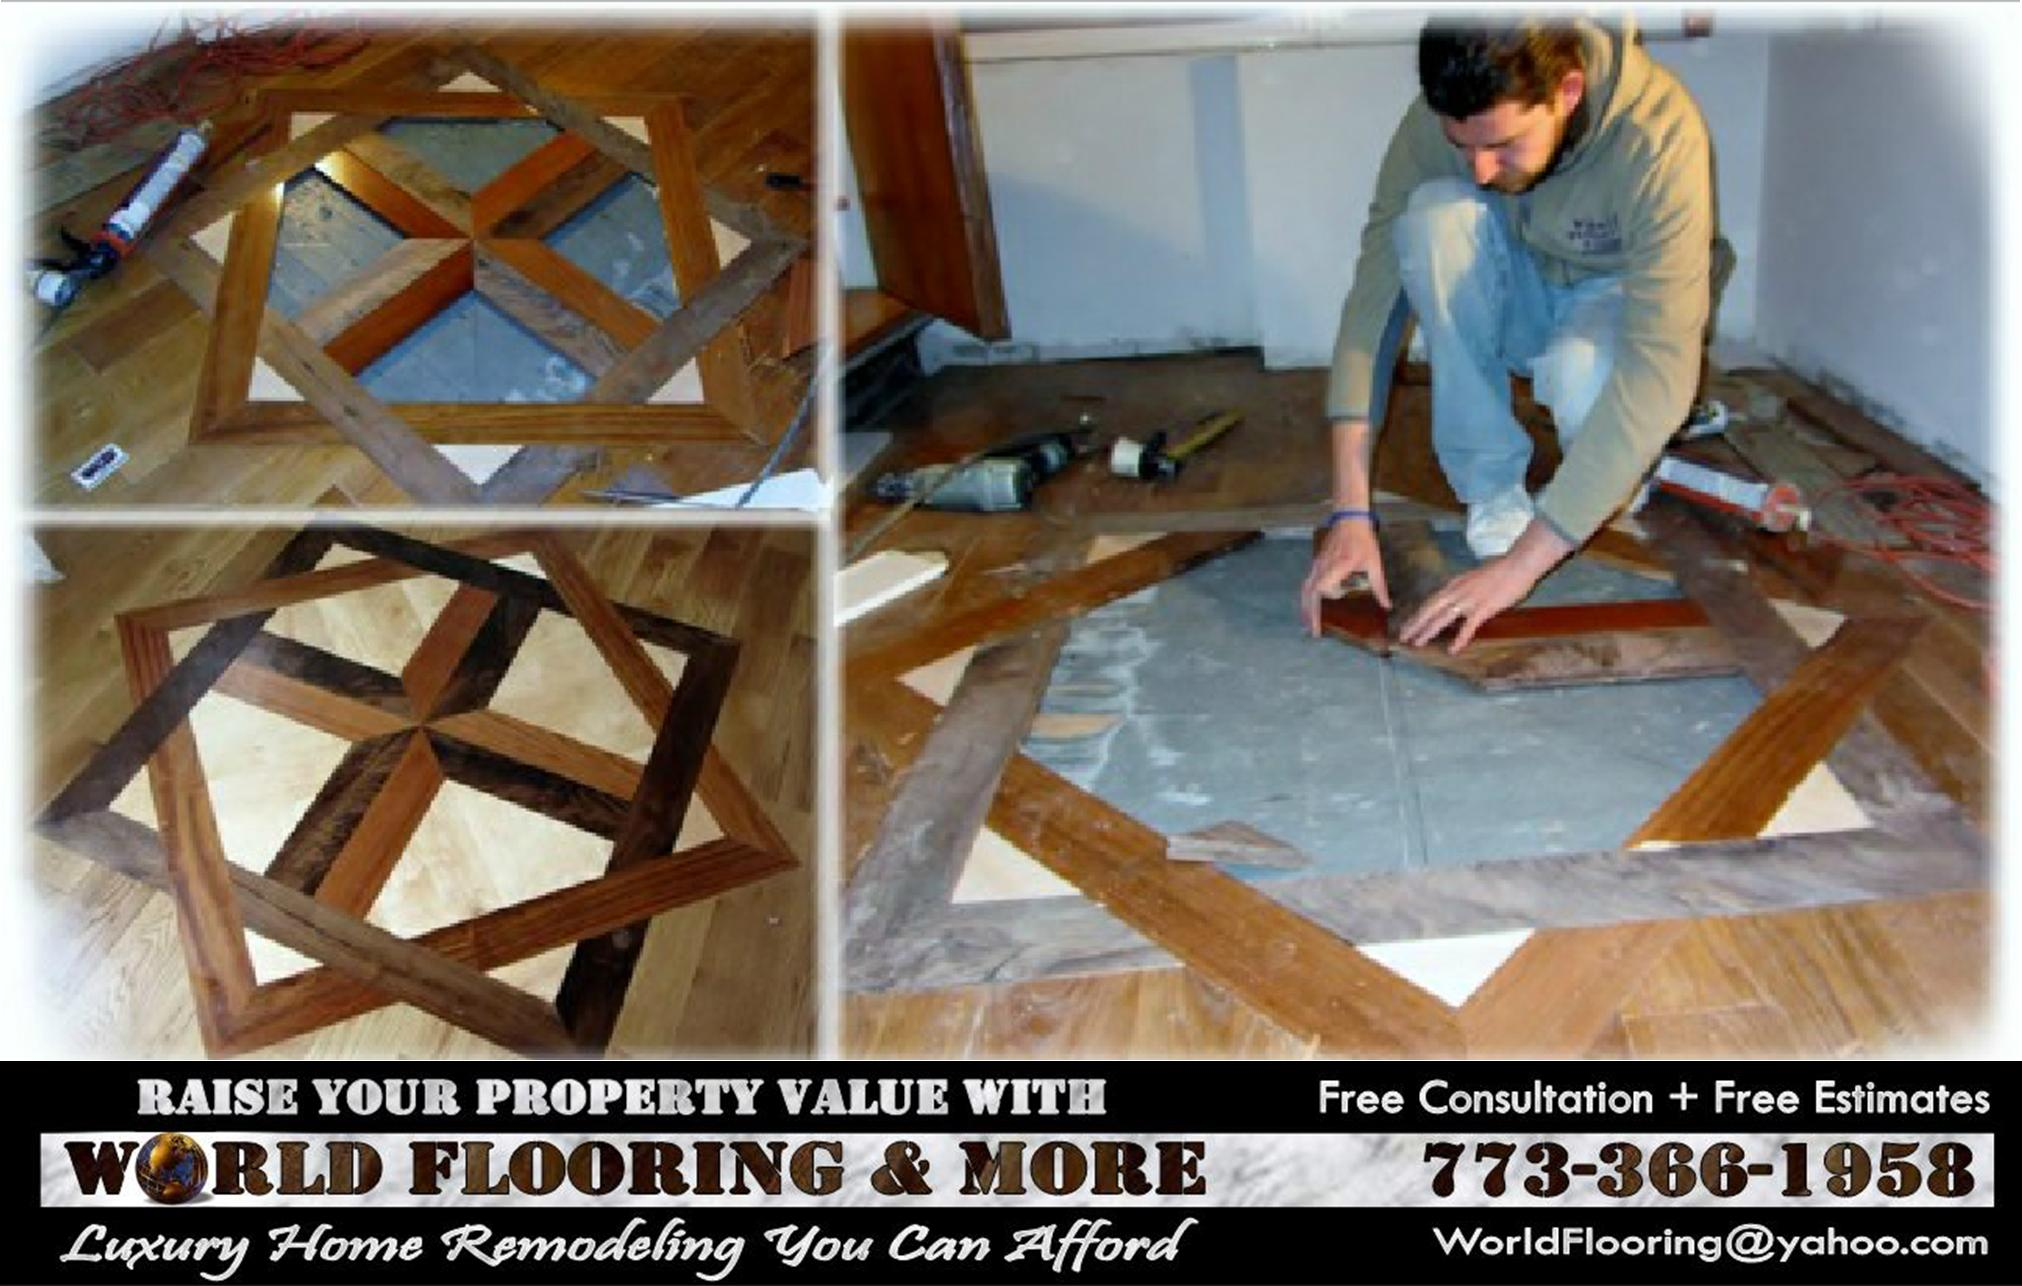 Hardwood Floor Inlays hardwood flooring staining inlay How To Make And Install A Hardwood Flooring Medallion Inlay Free Estimates Chicago And Soburbs